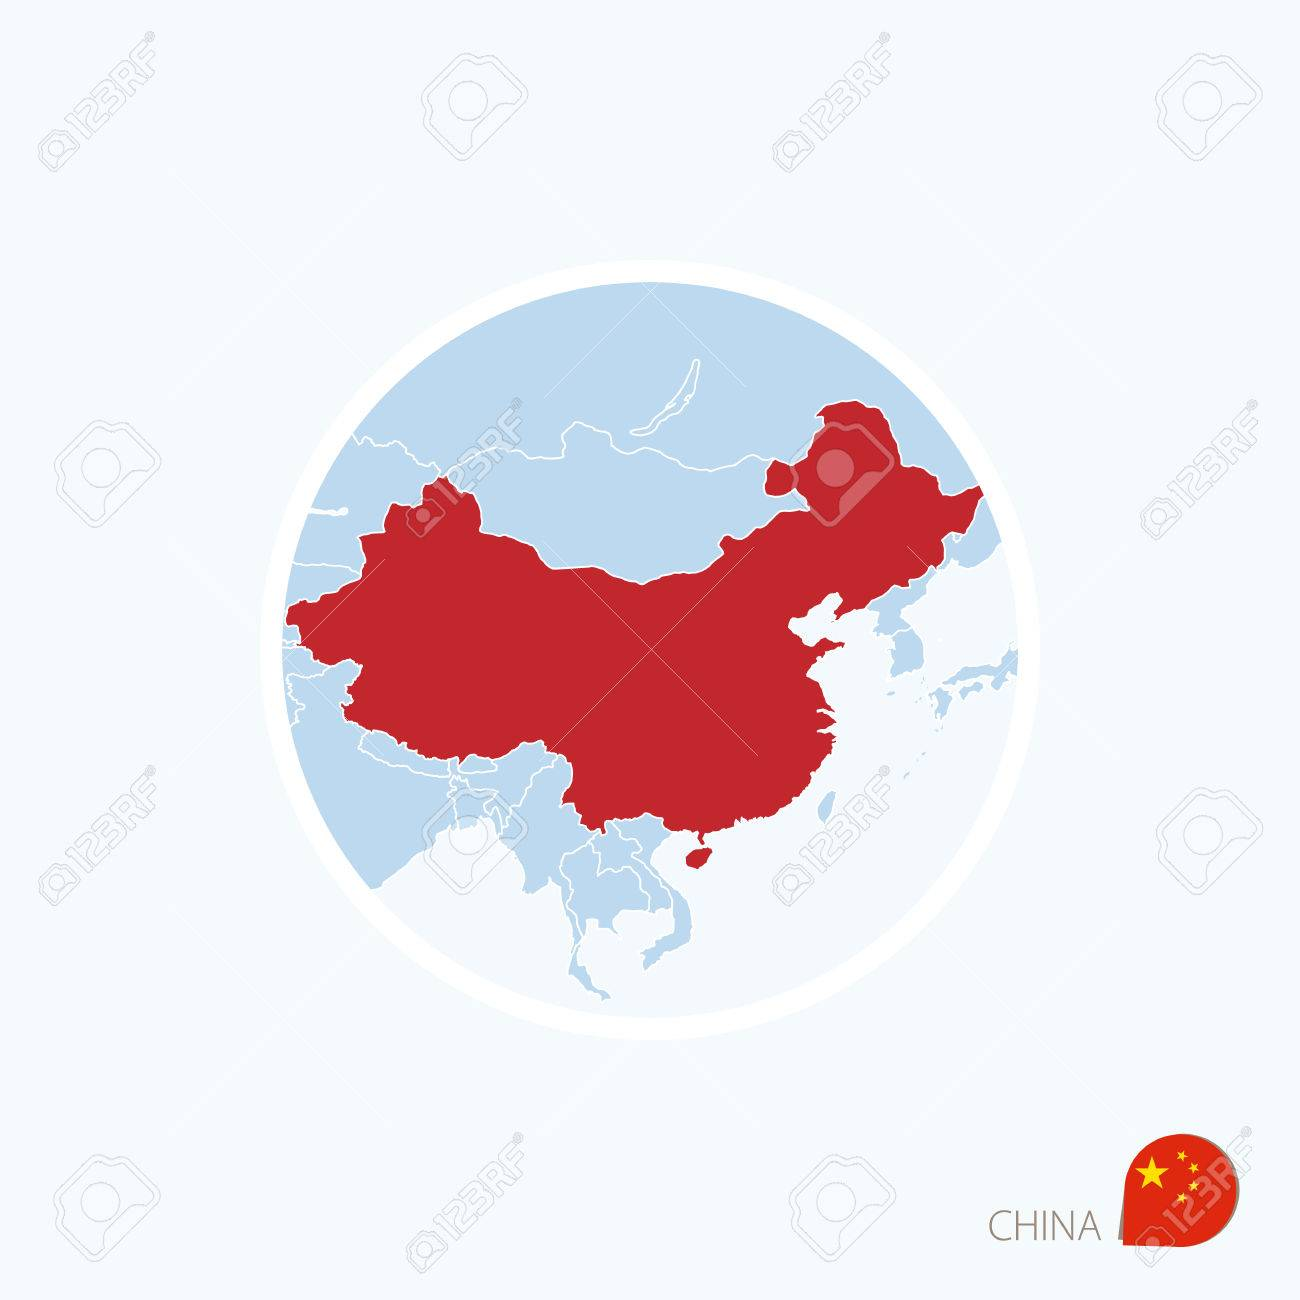 map icon of china blue map of east asia with highlighted china in red color